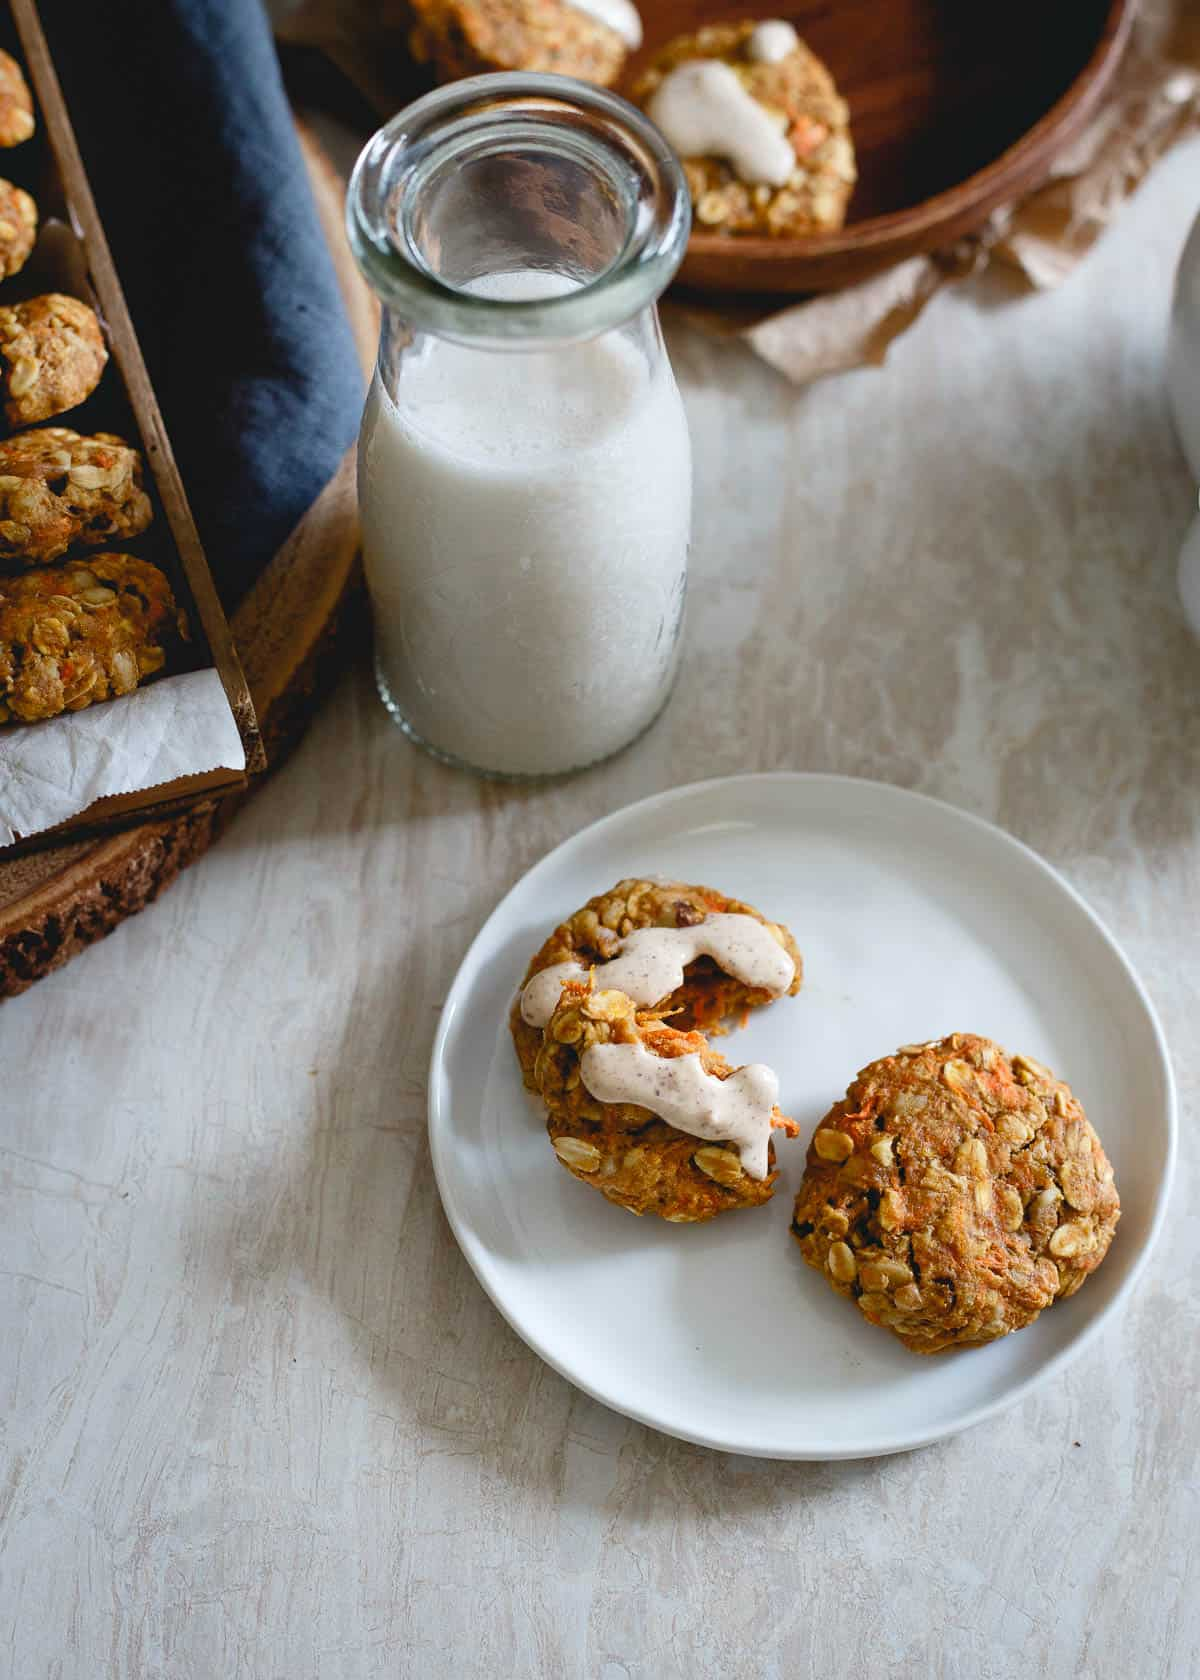 These healthy carrot cake cookies have no butter, no added sugar and are chock full of healthy wholesome ingredients.